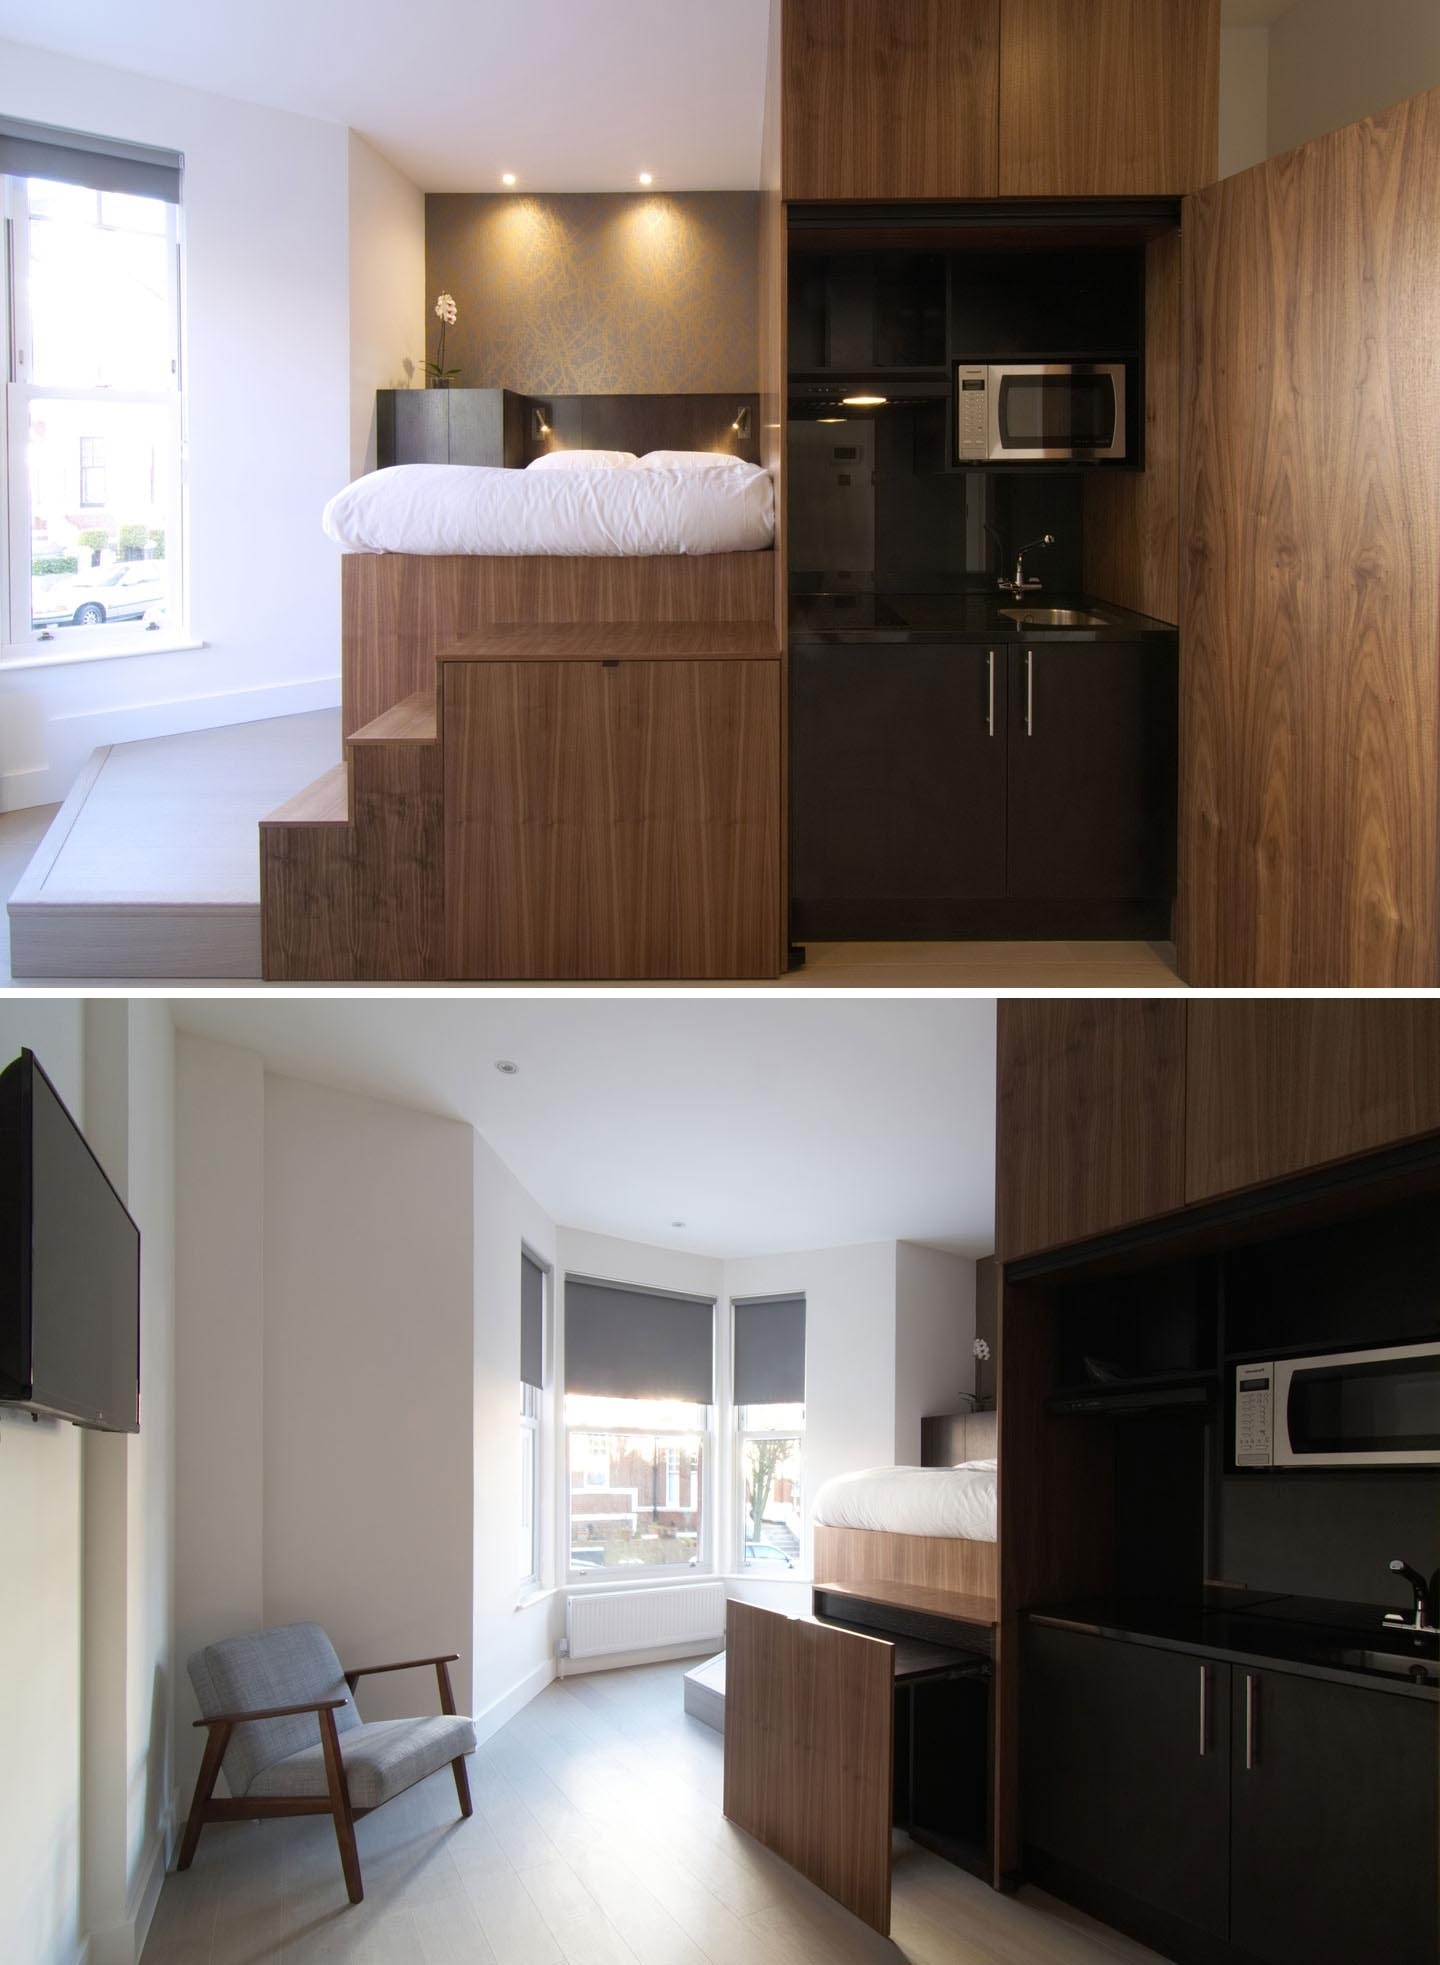 A Loft Bed Made Space For Extra Storage In This Small Apartment 18 Sqm Apartment Design